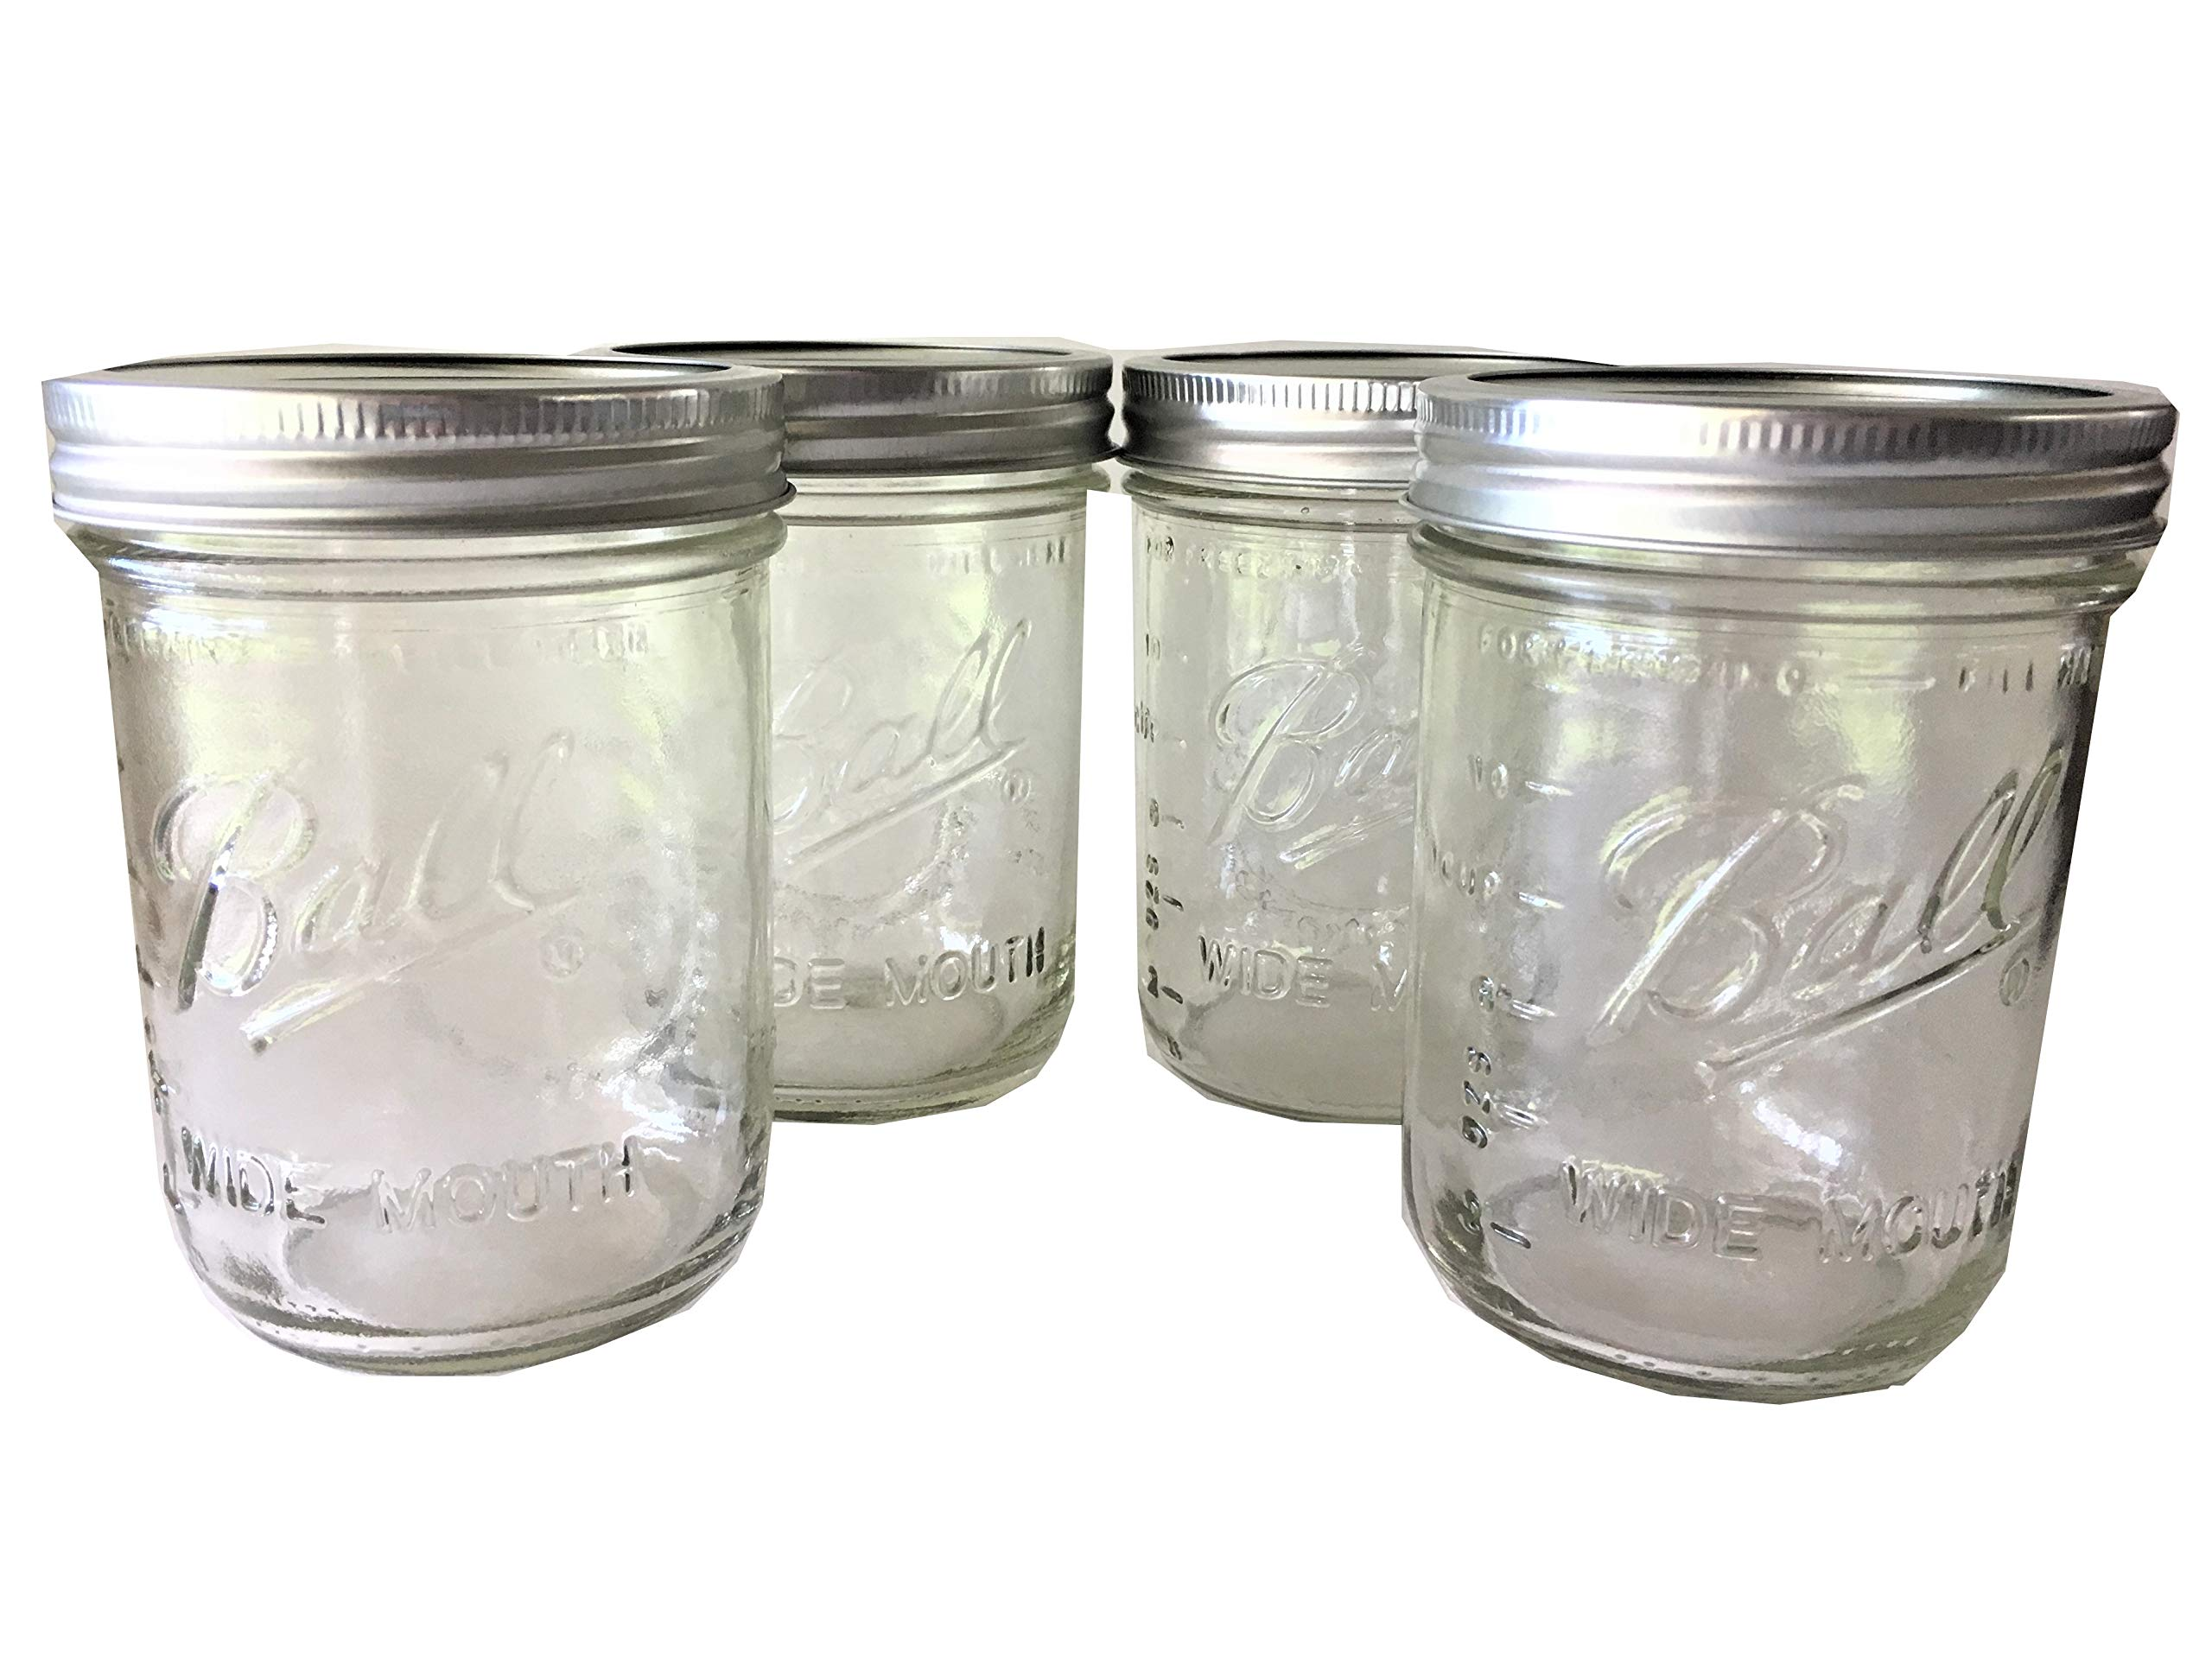 Ball Mason Jar-16 oz. Clear Glass Wide Mouth - Set of 4